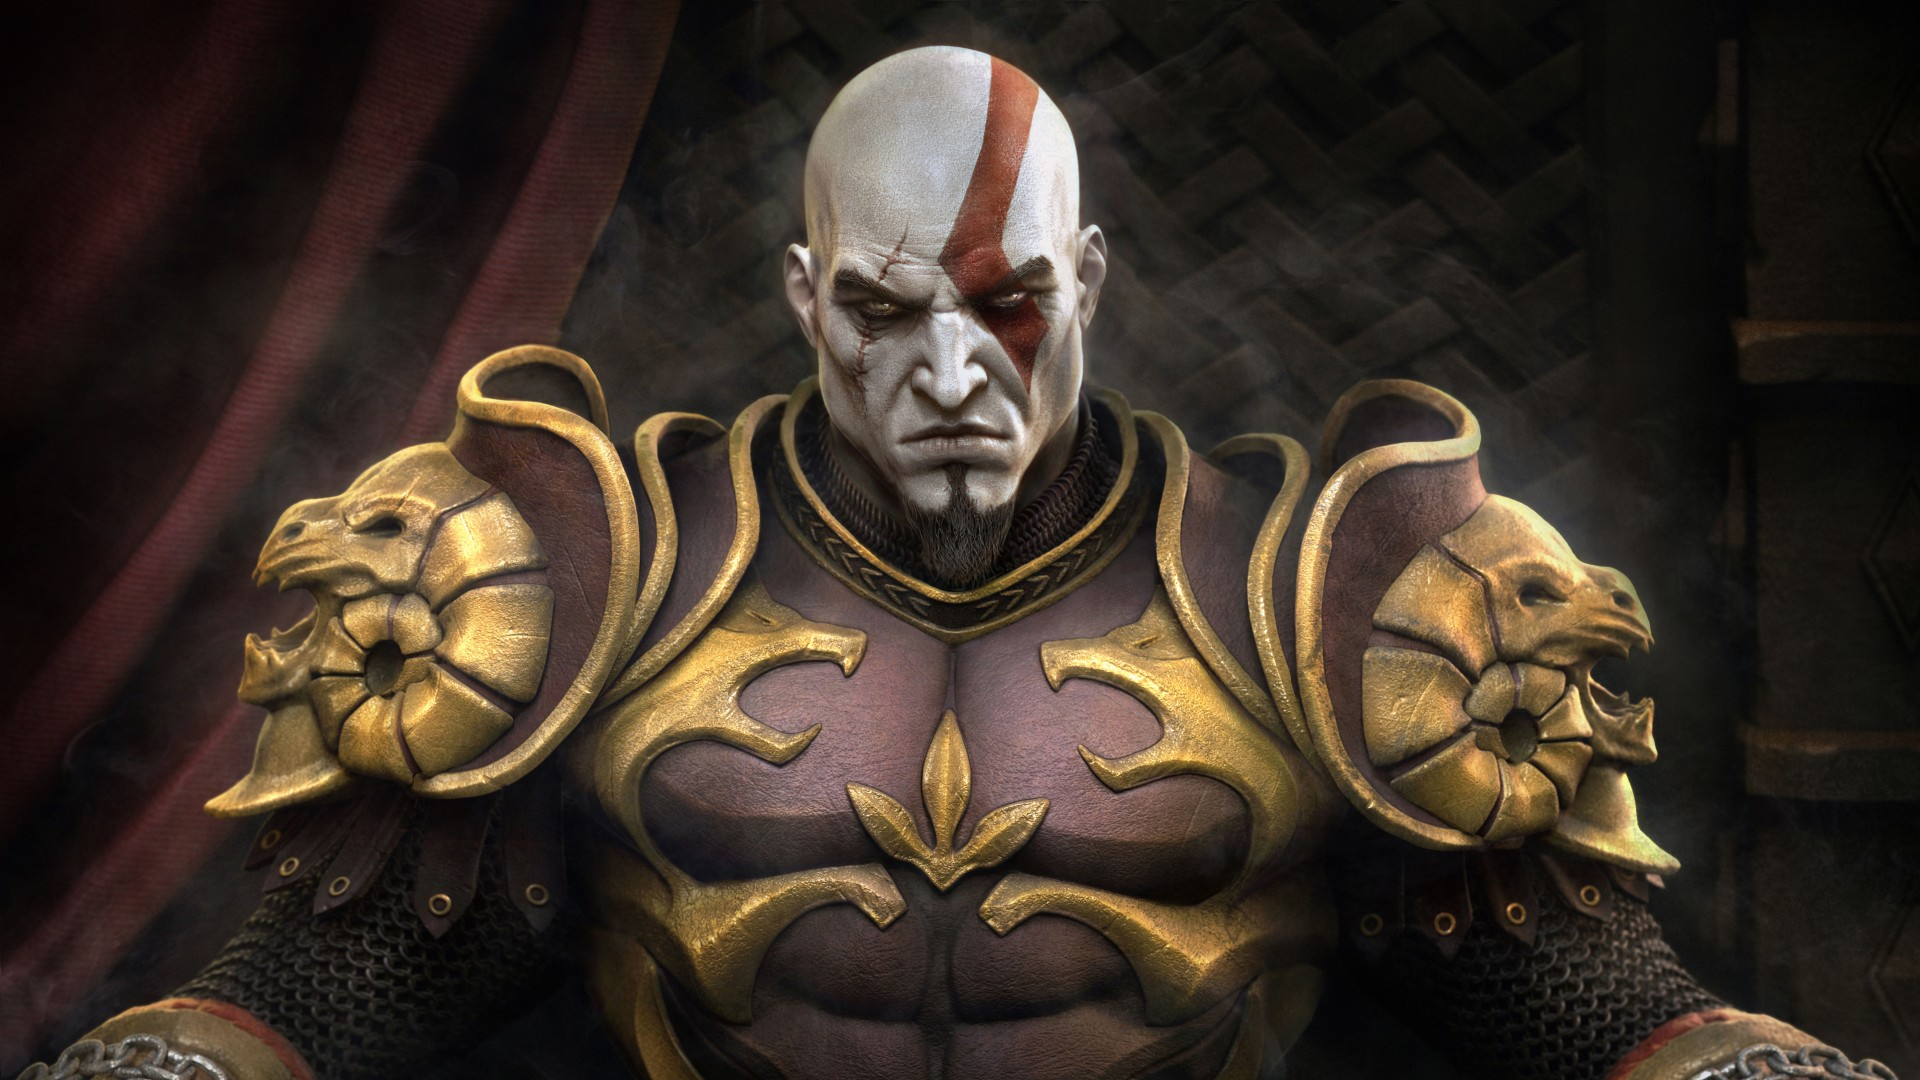 Download Black Wallpaper For Android Kratos Throne 4k 8k Wallpapers Hd Wallpapers Id 24090